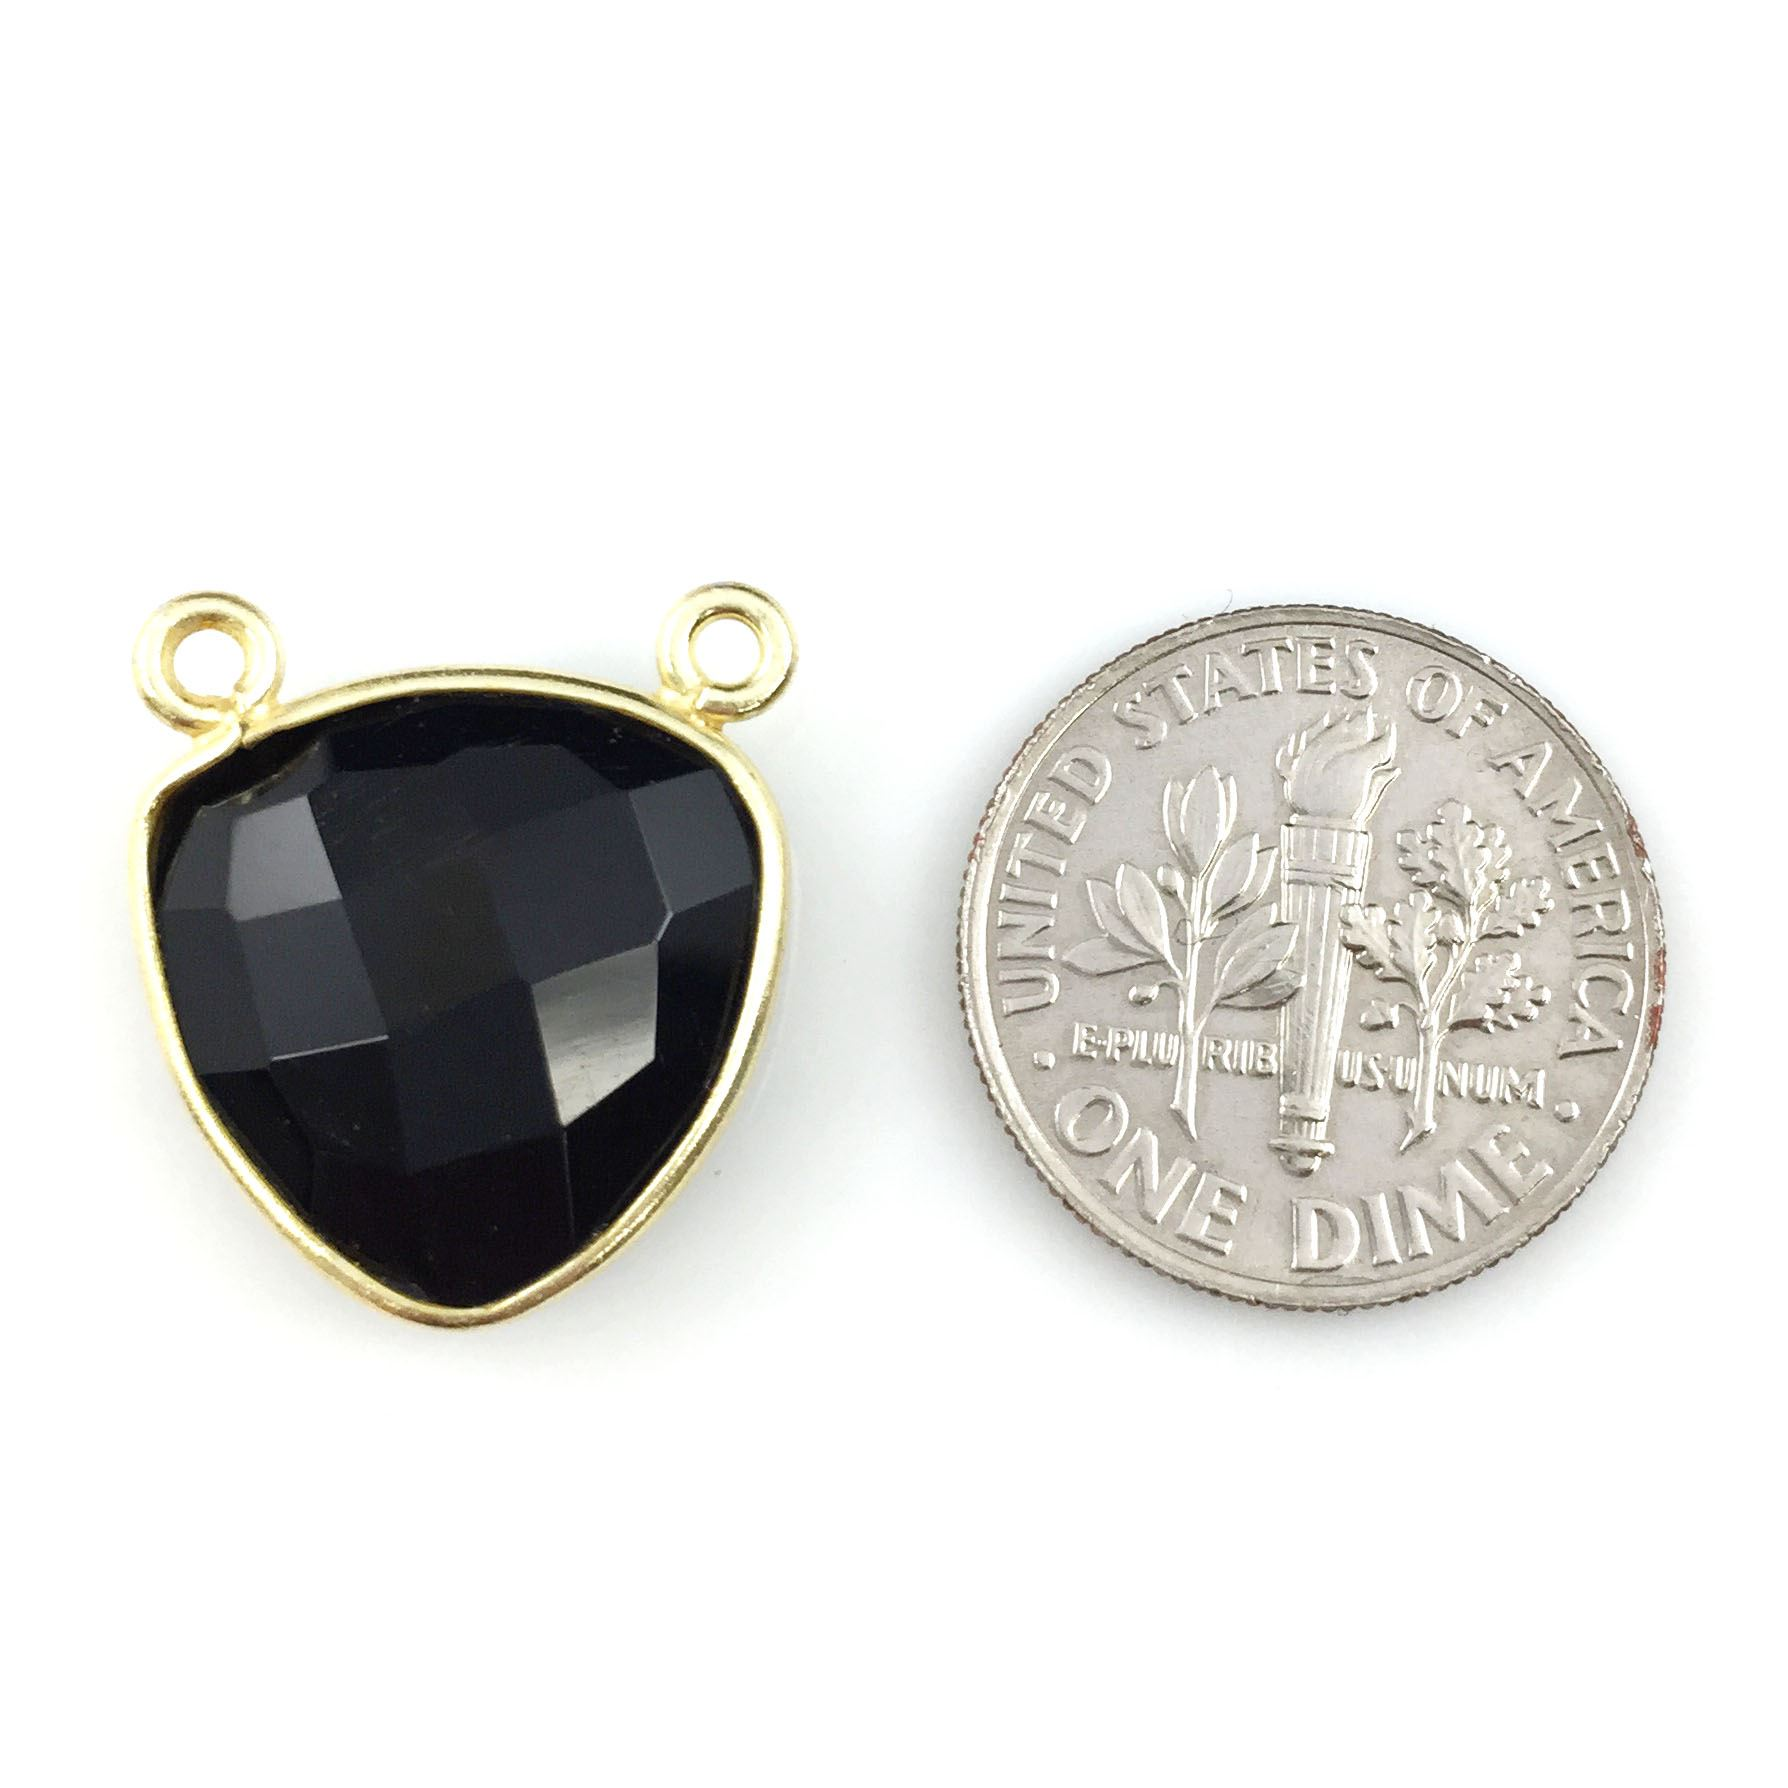 Bezel Gemstone Connector Pendant - Black Onyx - Gold plated Sterling Silver - Small Trillion Shaped Faceted - 15mm - 1 piece